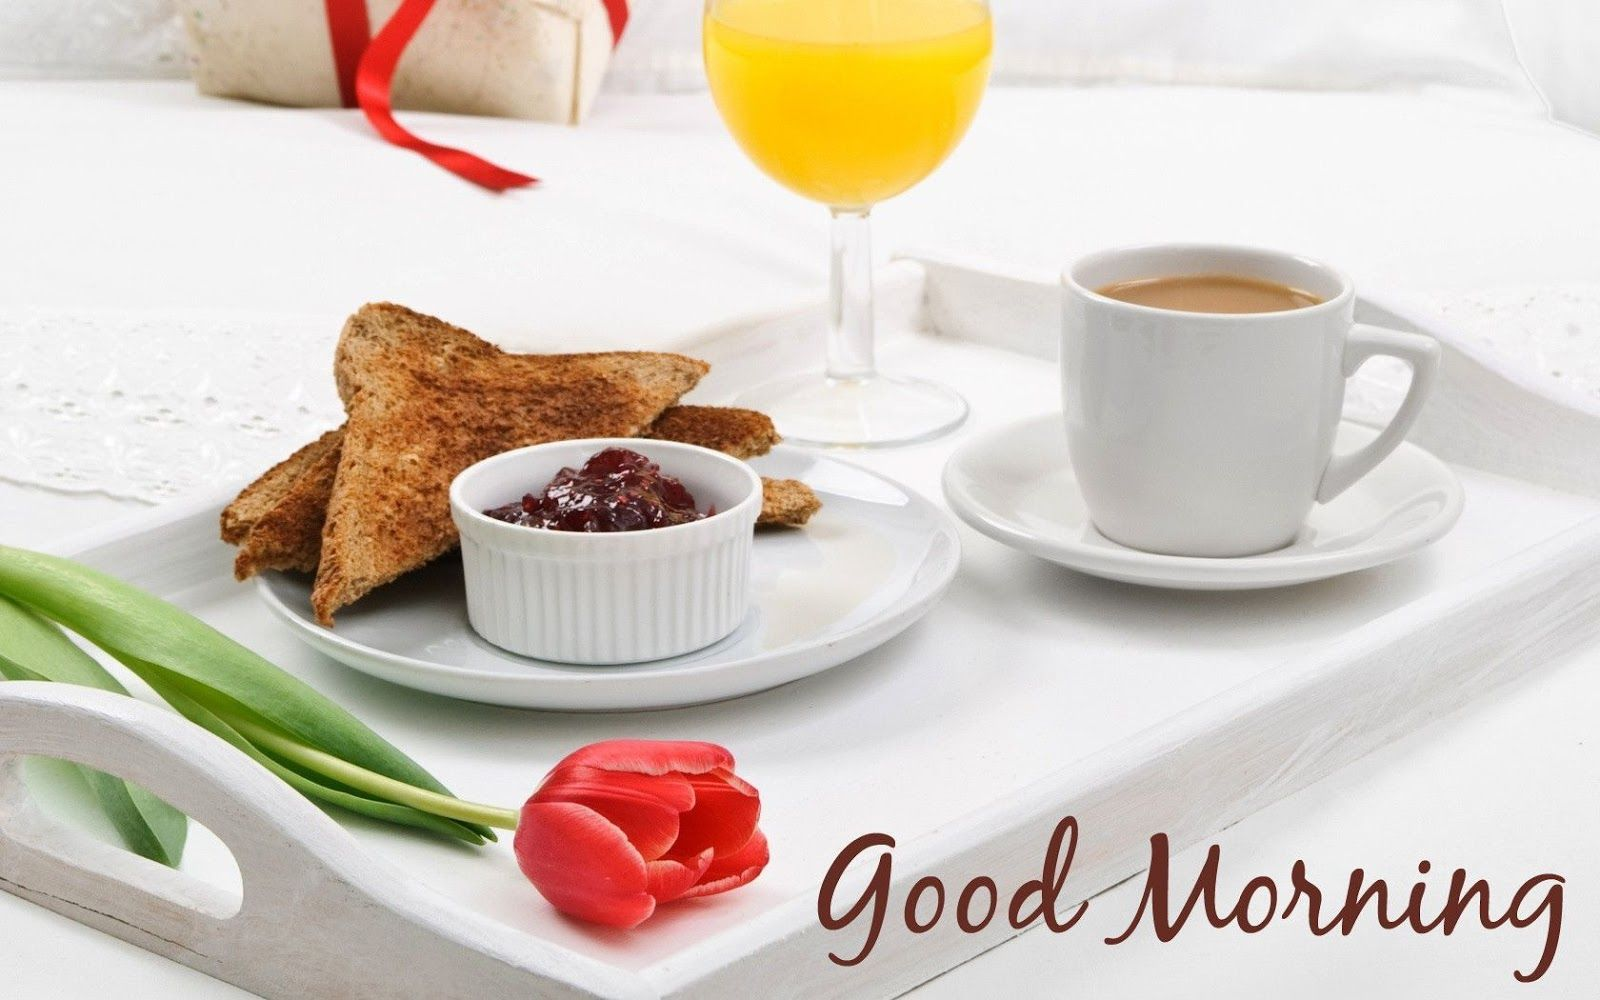 20 Good Morning Images Hd And Wallpapers Good Morning Breakfast Good Morning Tea Cute Good Morning Images